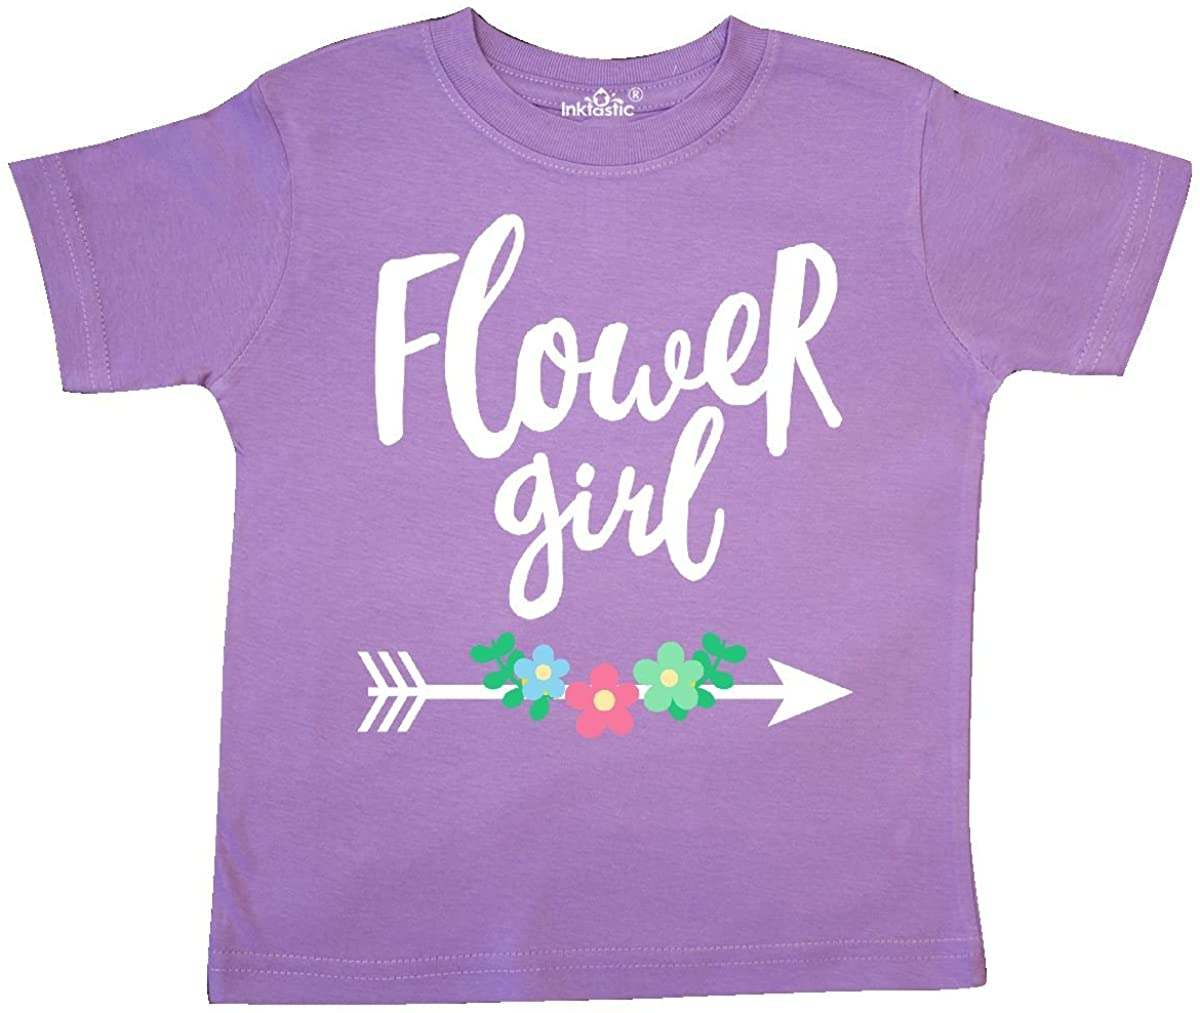 inktastic Flower Girl with Arrow and Flowers Toddler T-Shirt